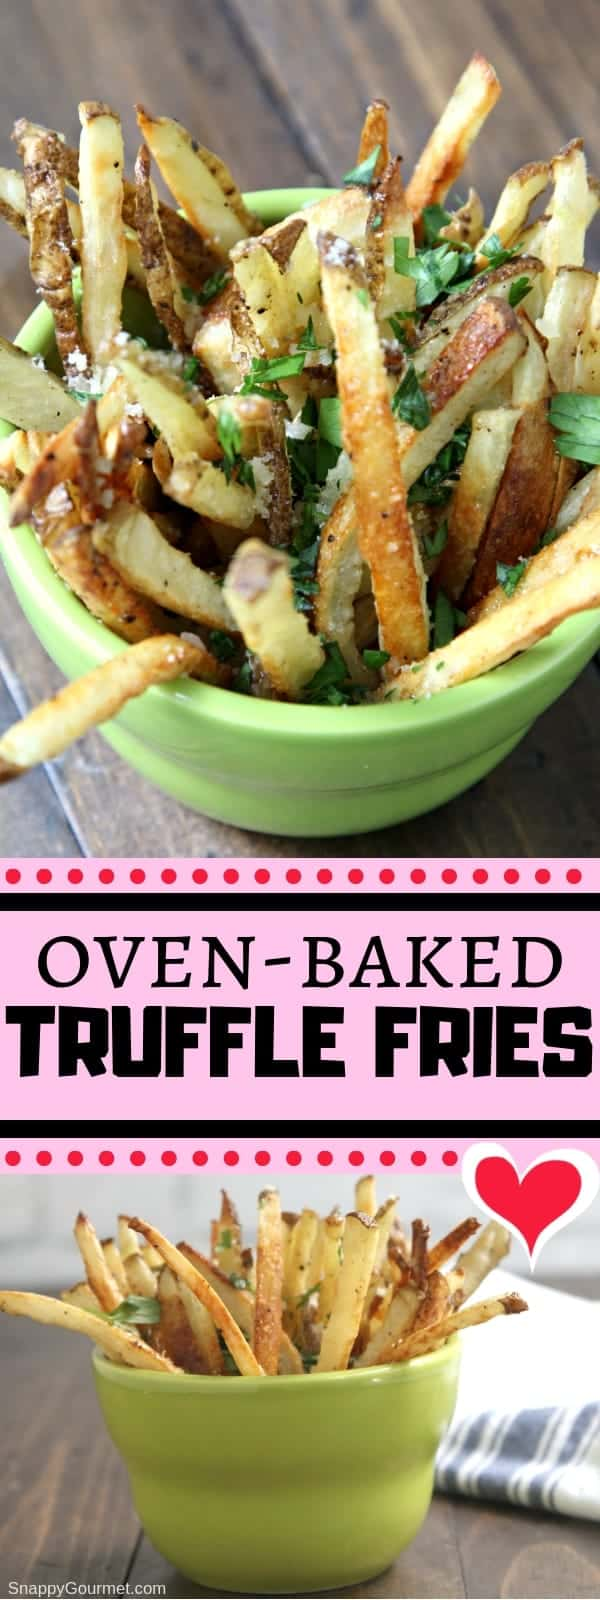 Truffle Fries - homemade oven baked french fries recipe with truffle oil